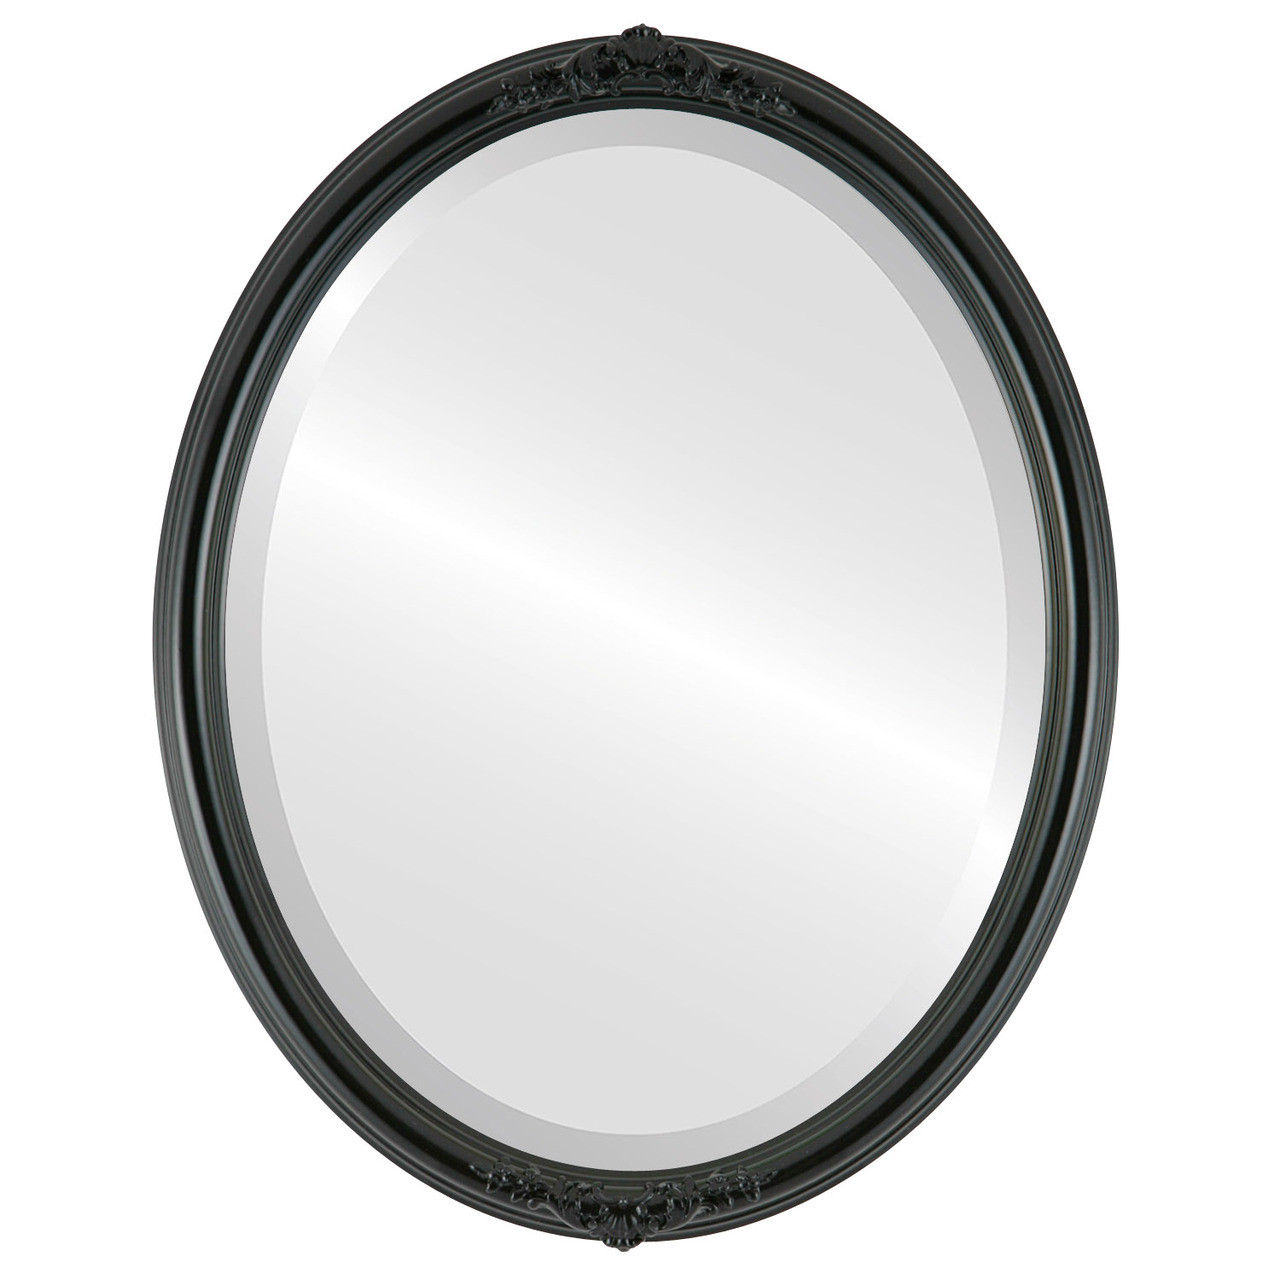 Vintage Black Oval Mirrors from $126 | Free Shipping